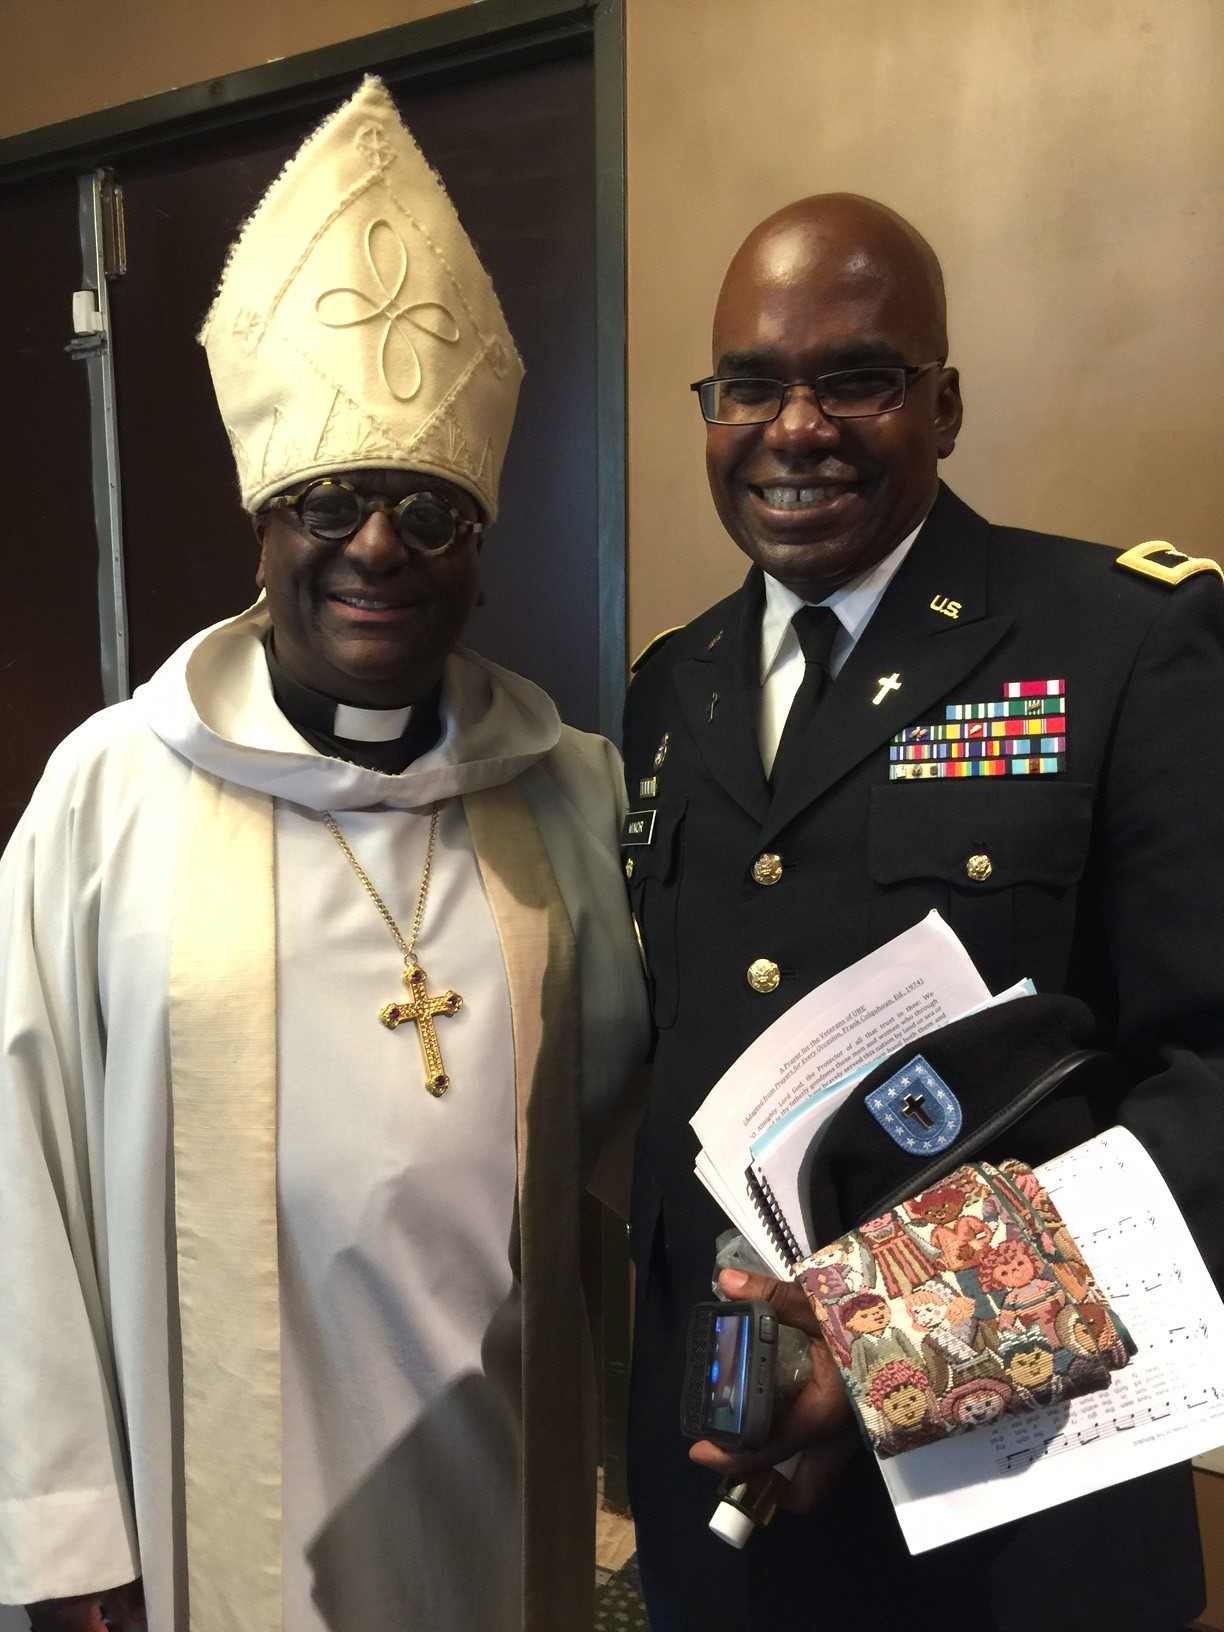 Chaplain Paul Minor - serves as co-rector with his wife in a parish and as chaplain with his National Guard unit.